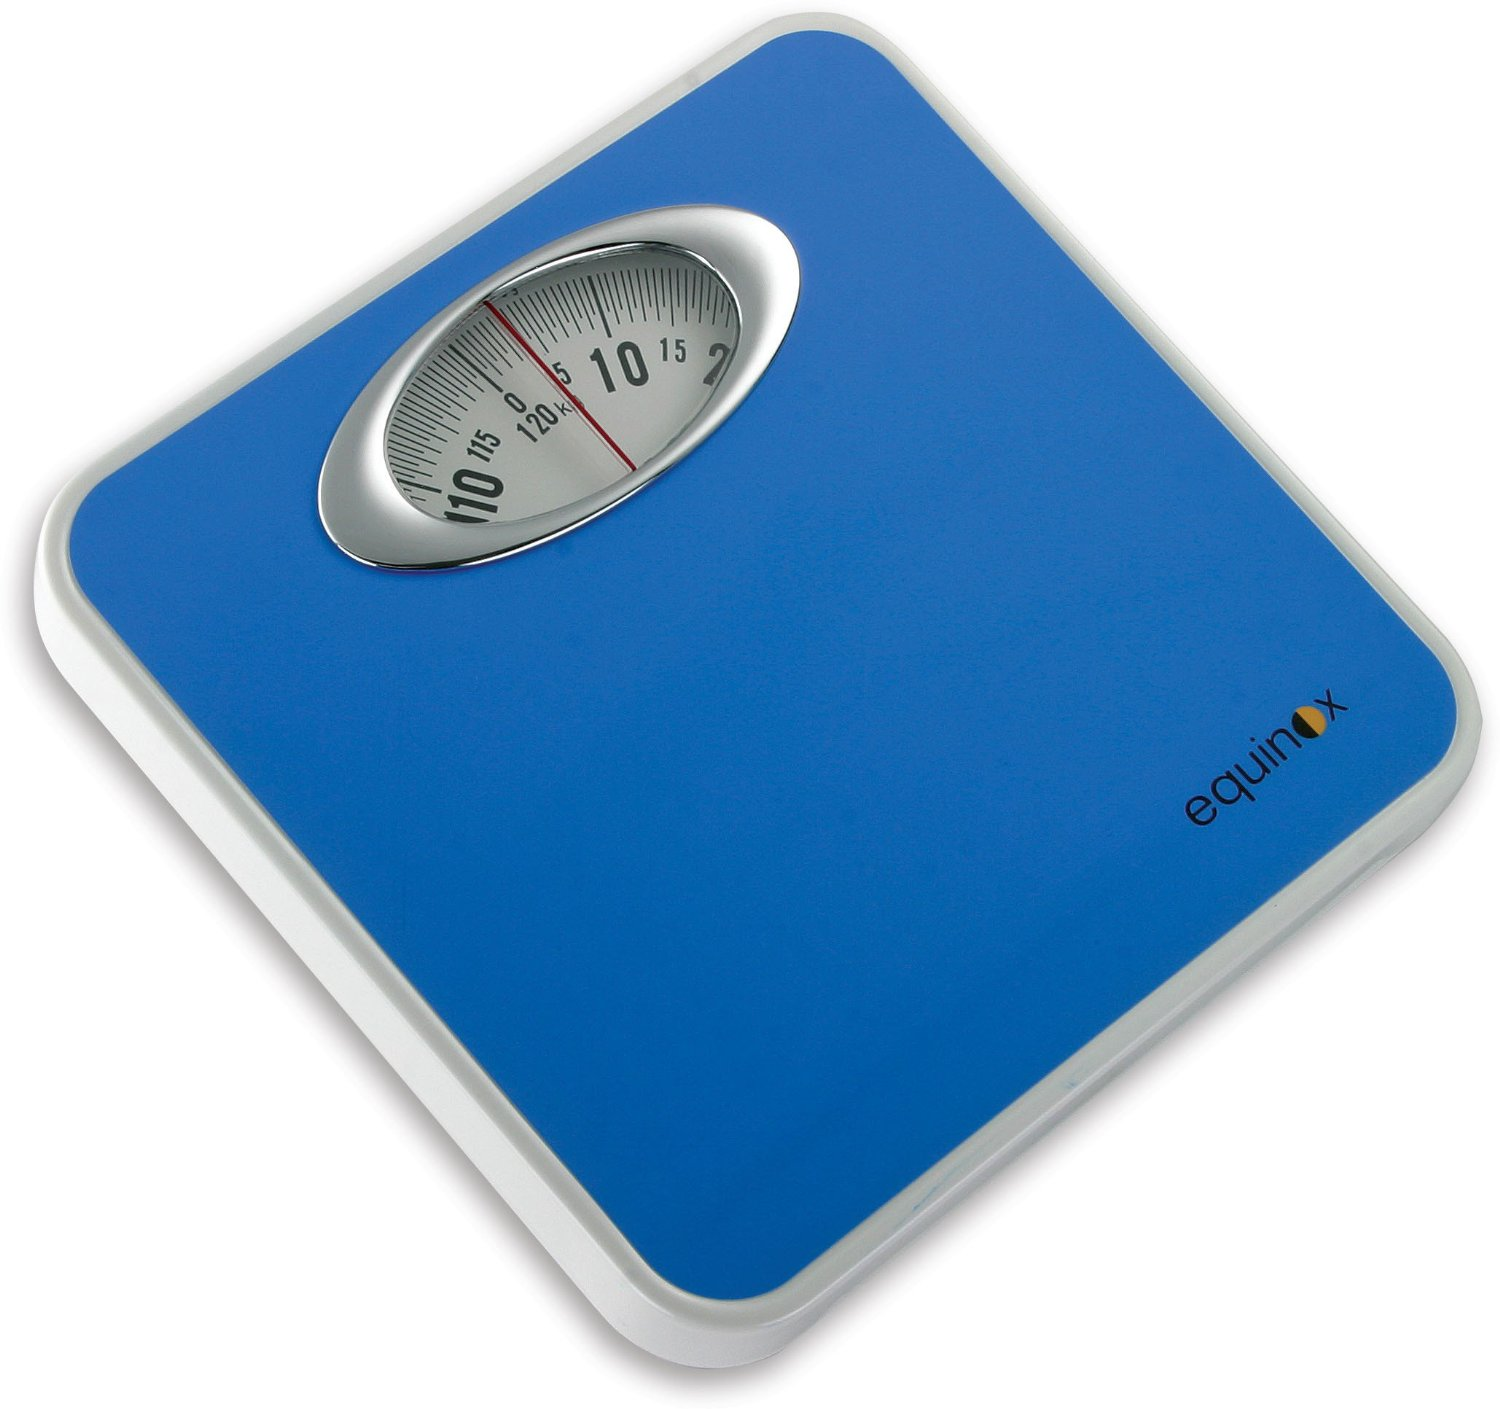 Equinox Weighing Scale Analog BR-9015   Buy Online at best